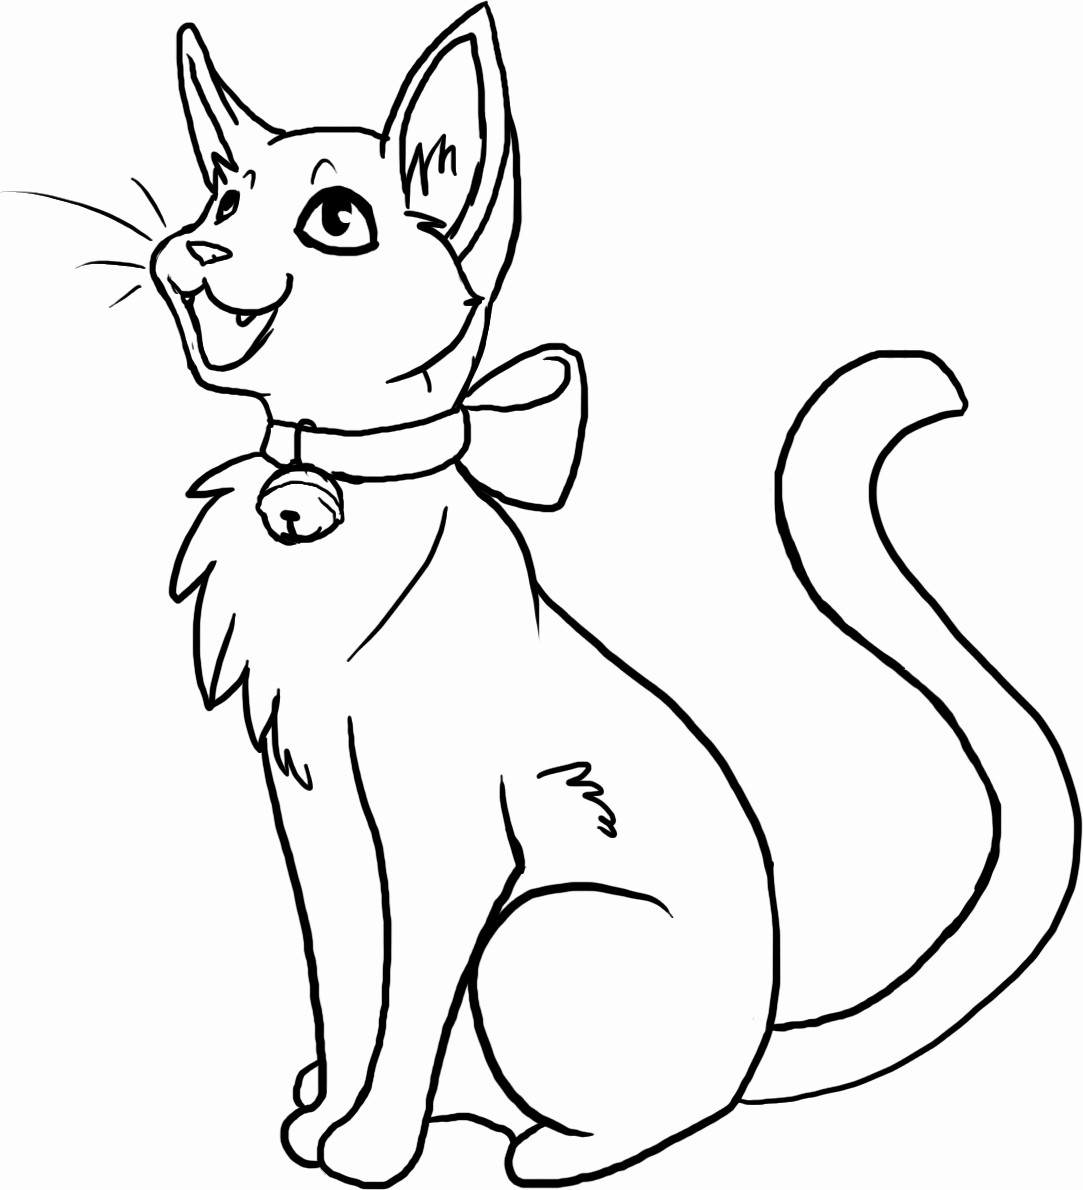 1083x1190 Warrior Cat Coloring Pages Ahmedmagdy Me Beautiful Cats Valentines